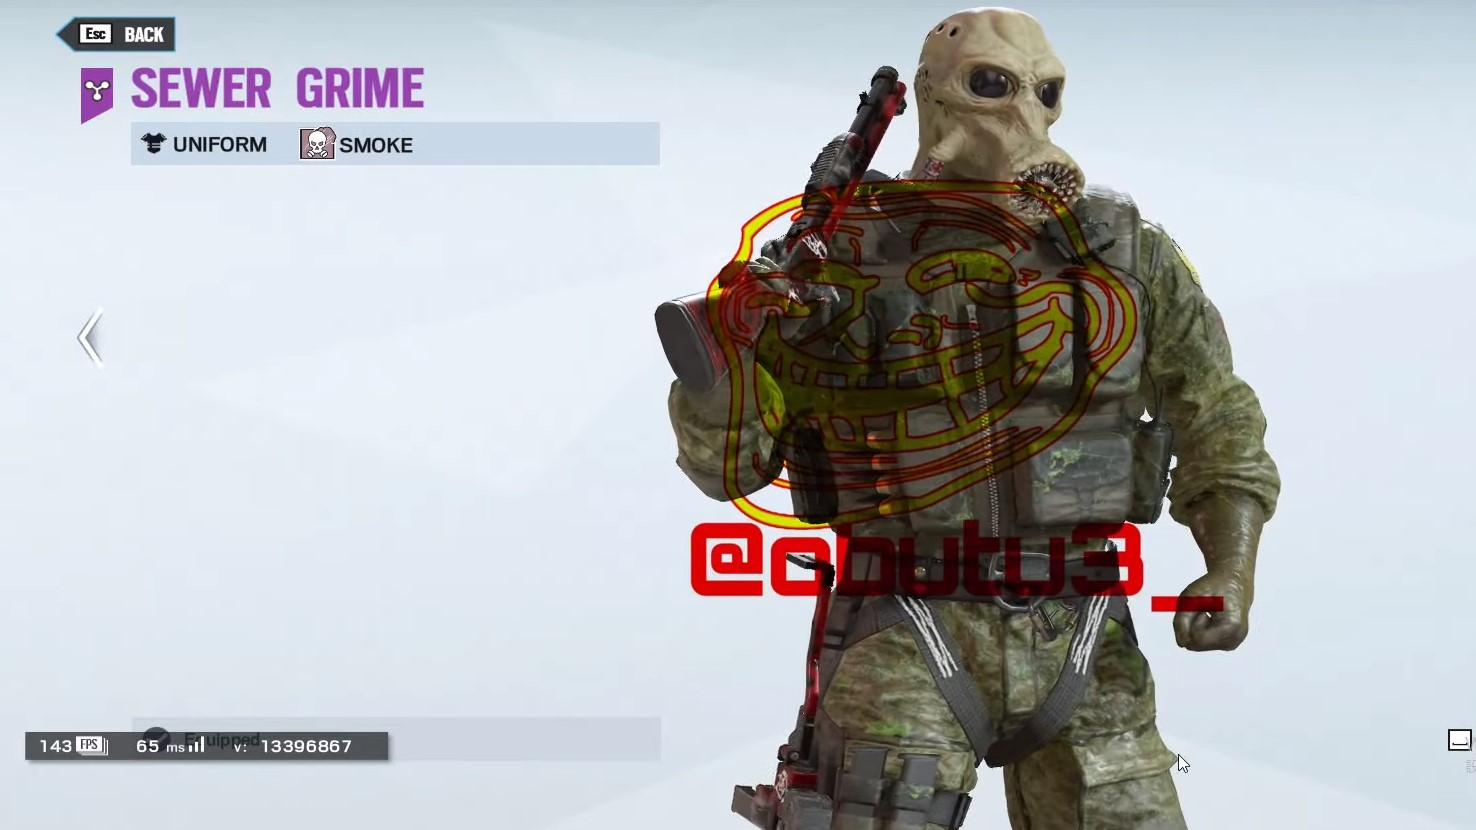 R6 Halloween 2020 Skins Rainbow Six Siege's Halloween skins appear to have leaked | PC Gamer